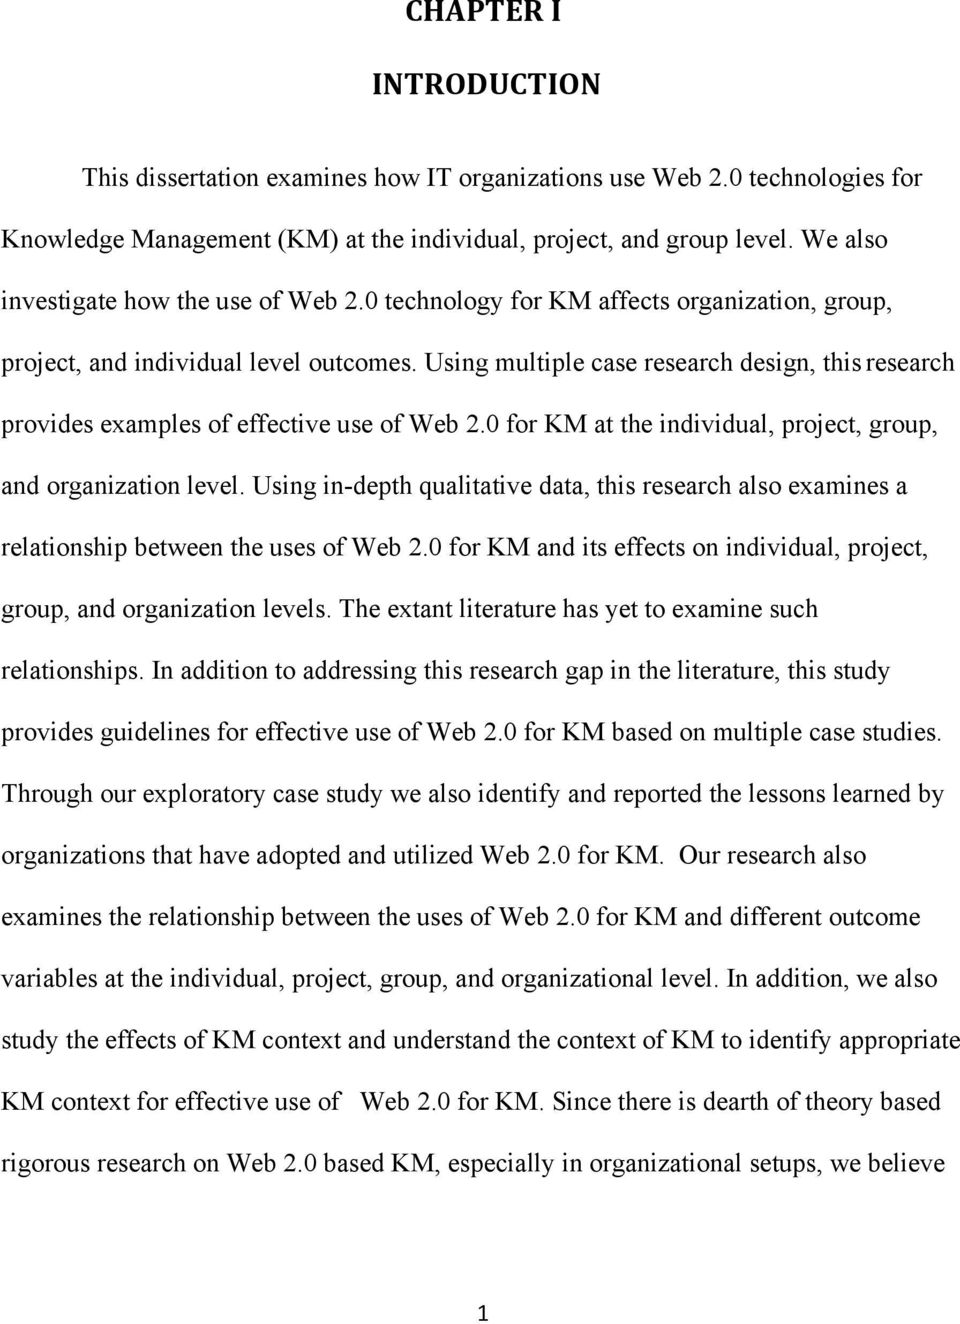 Using multiple case research design, this research provides examples of effective use of Web 2.0 for KM at the individual, project, group, and organization level.